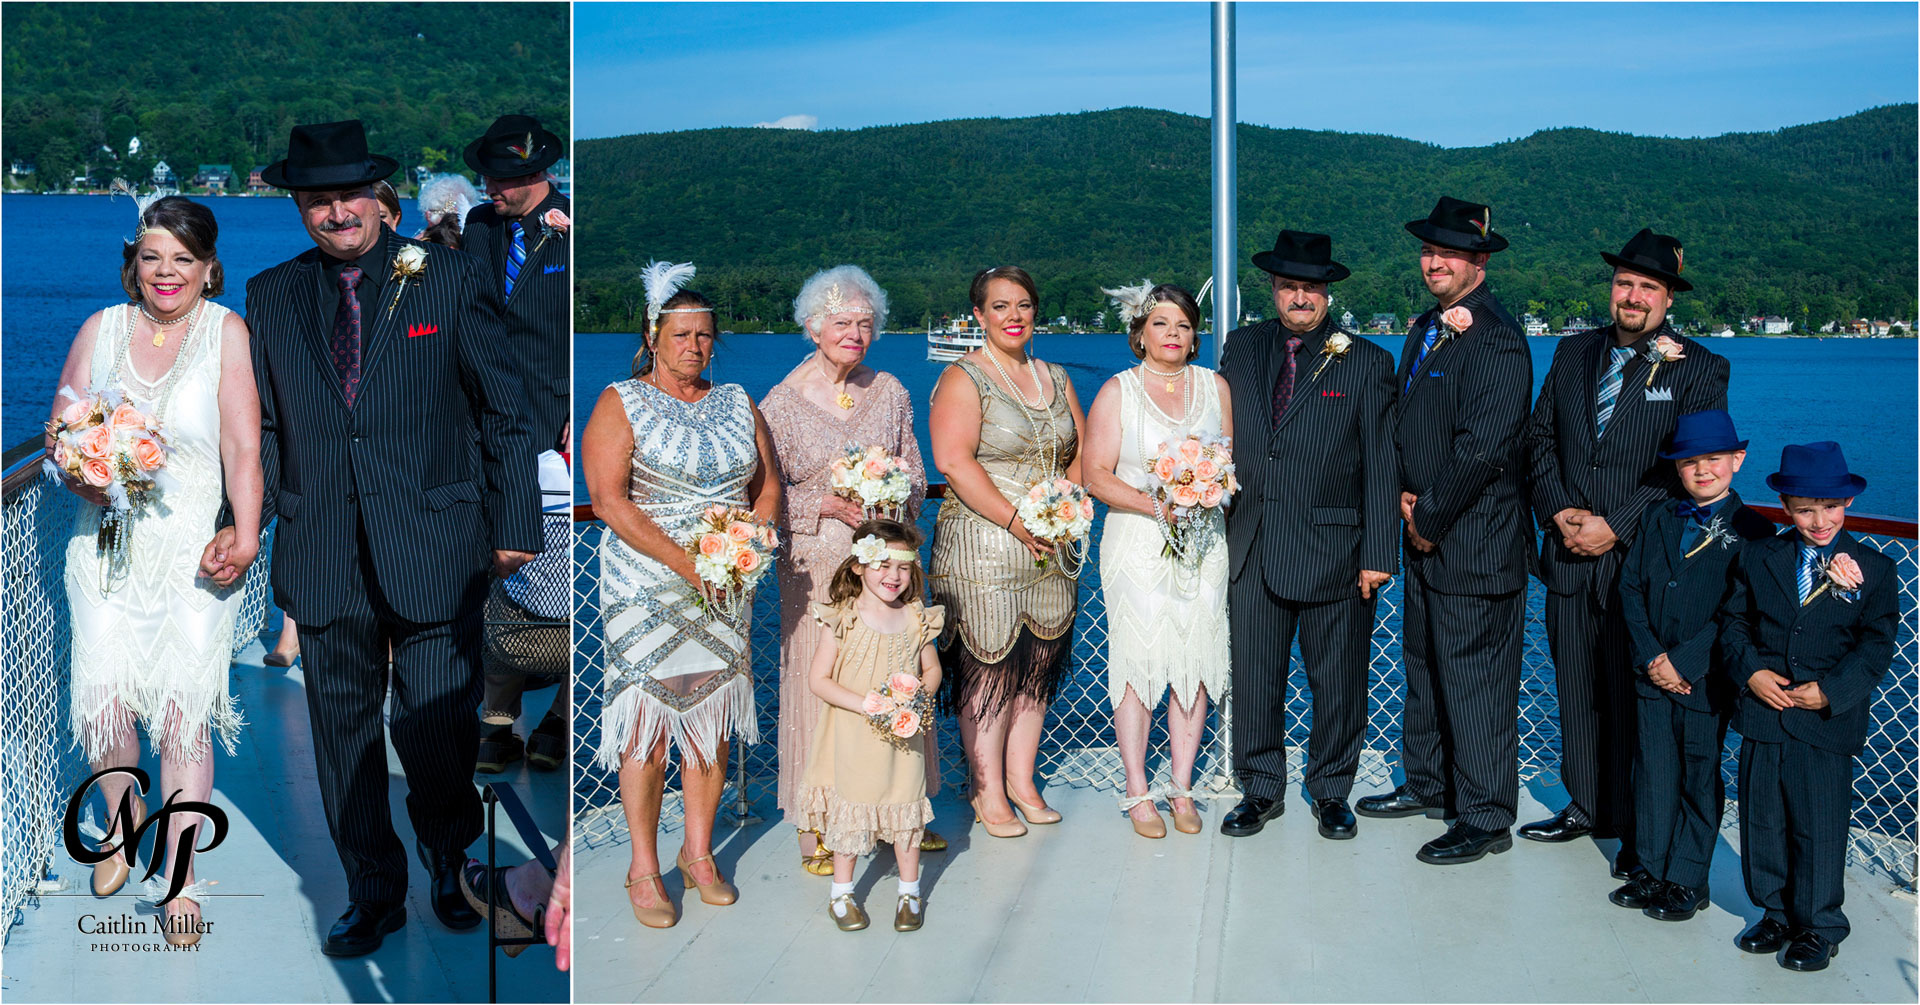 bombard-17.jpg from Jan and Robert's vow renewal on shoreline Cruise's Adirondac Boat on Lake George, NY by Saratoga Wedding Photographer Caitlin Miller Photography. Lake George Wedding Photographer. Stamford wedding photographer. Albany wedding photographer. Shoreline Cruises Wedding Photographer. Saratoga Wedding Photographer